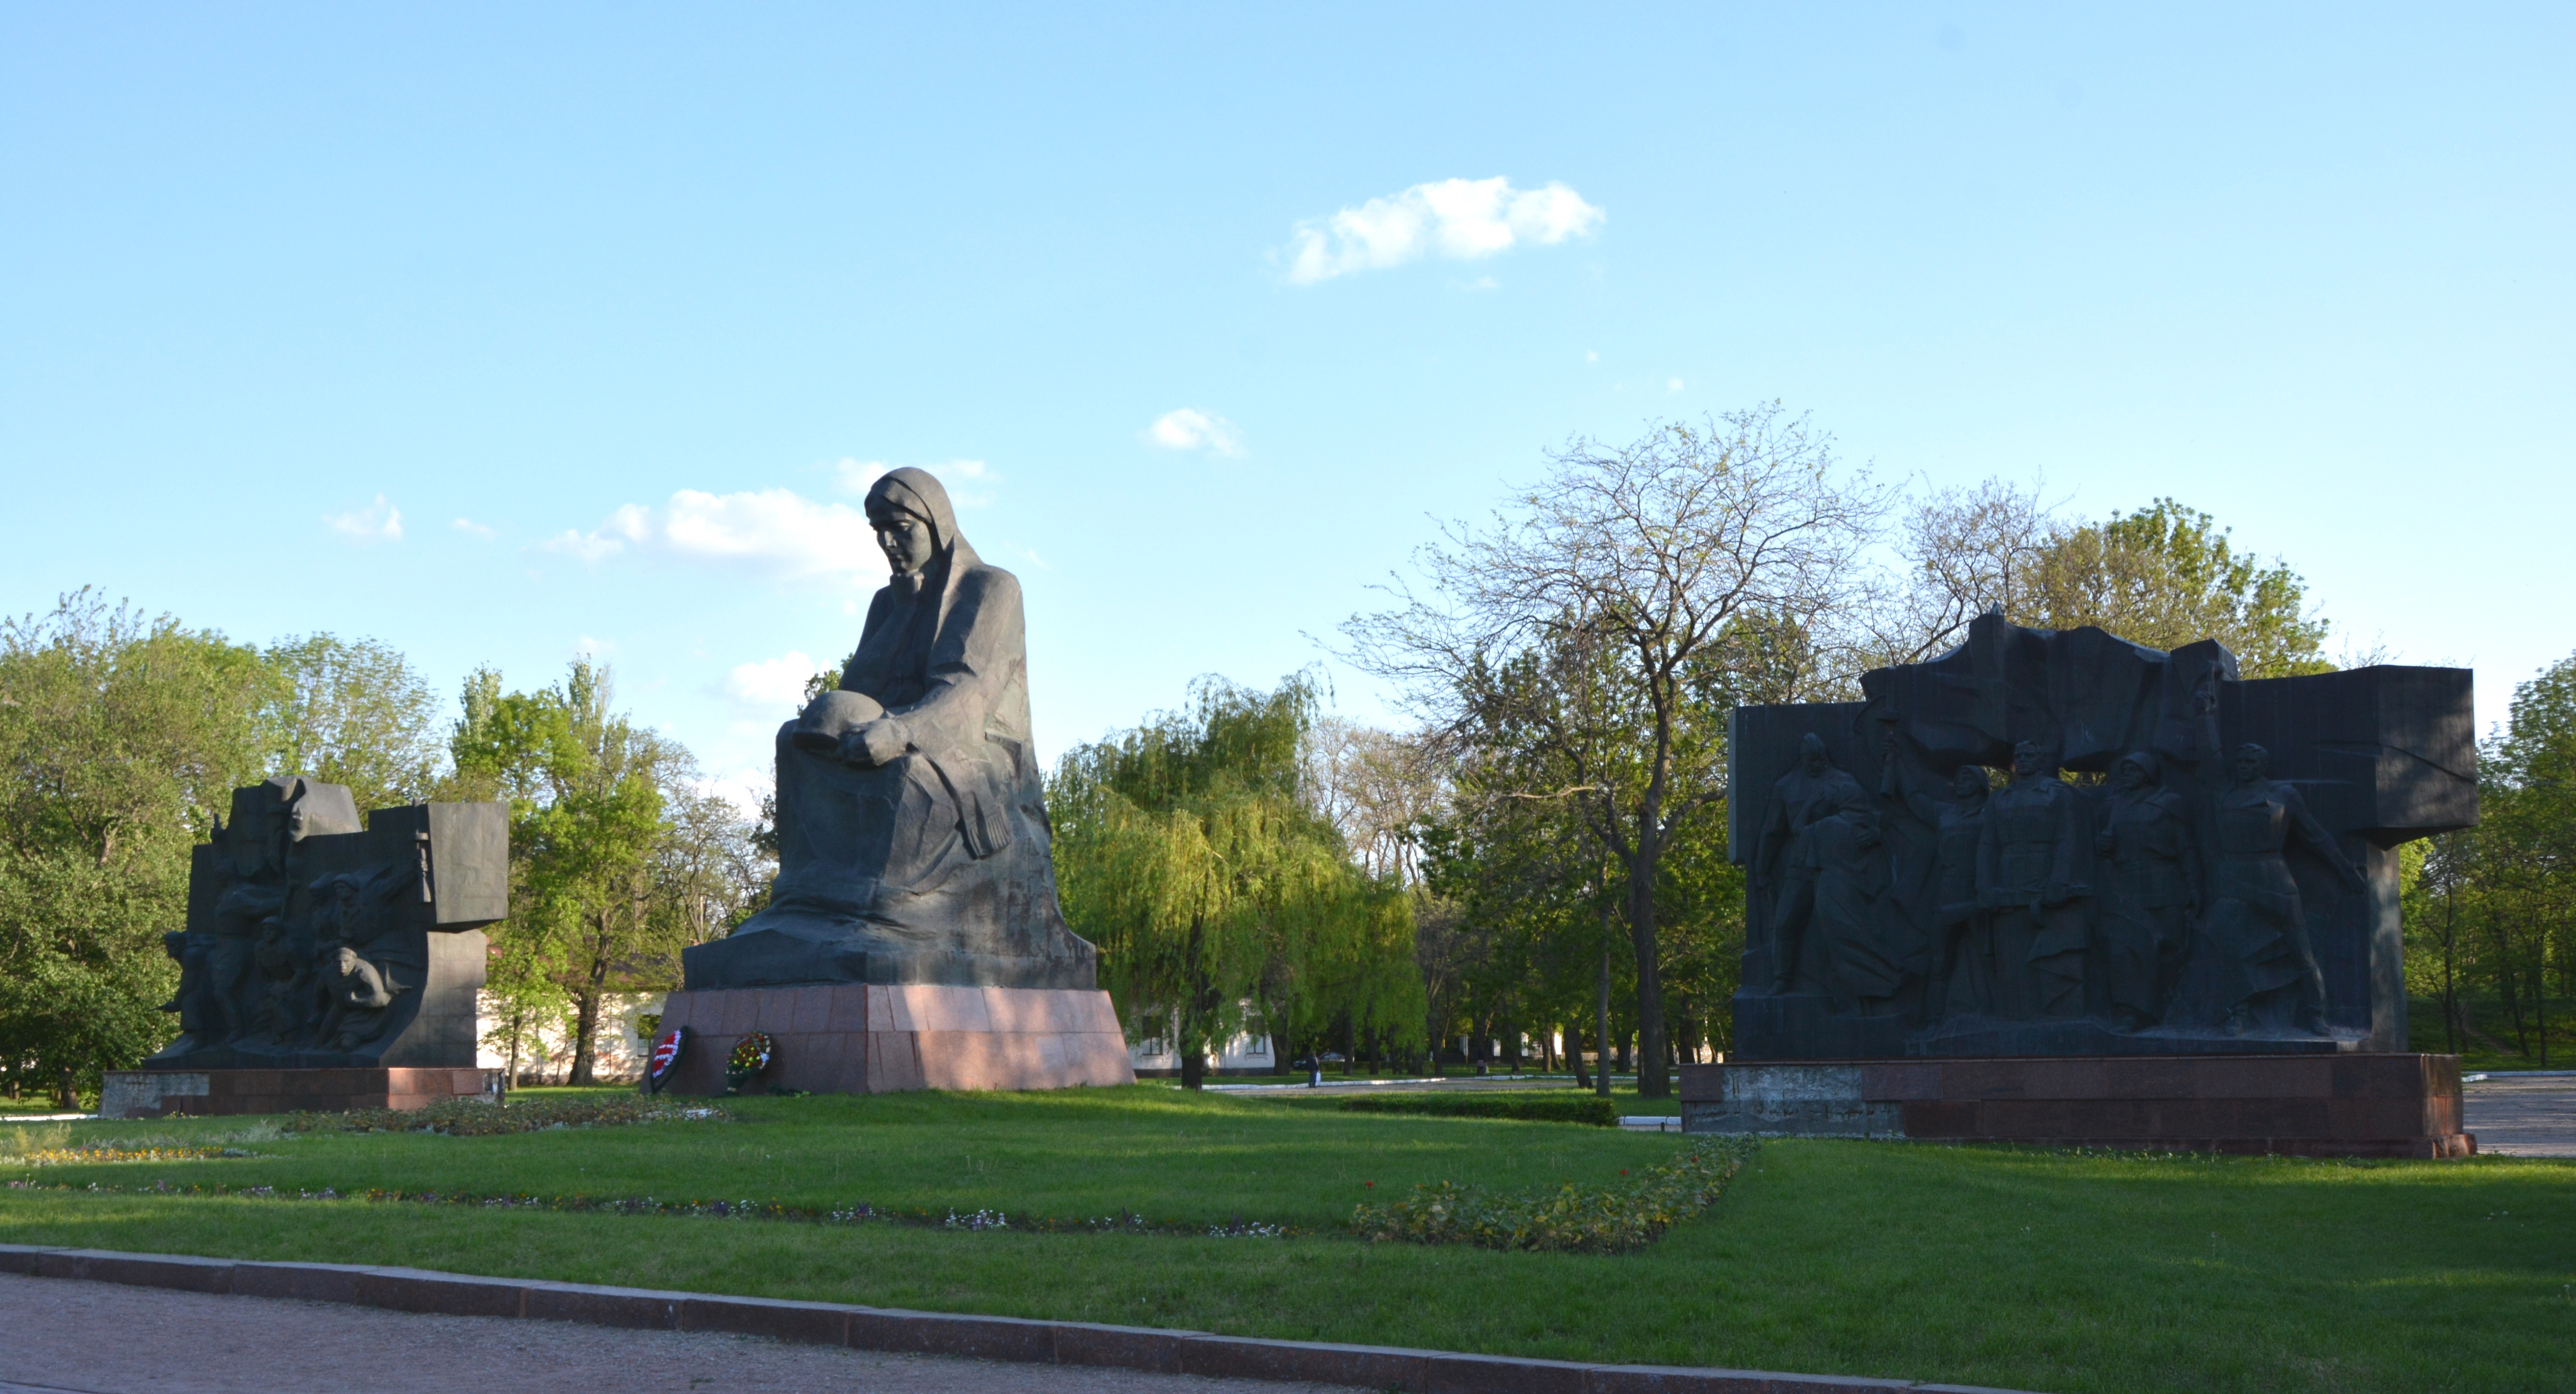 Kirovograd: a selection of sites